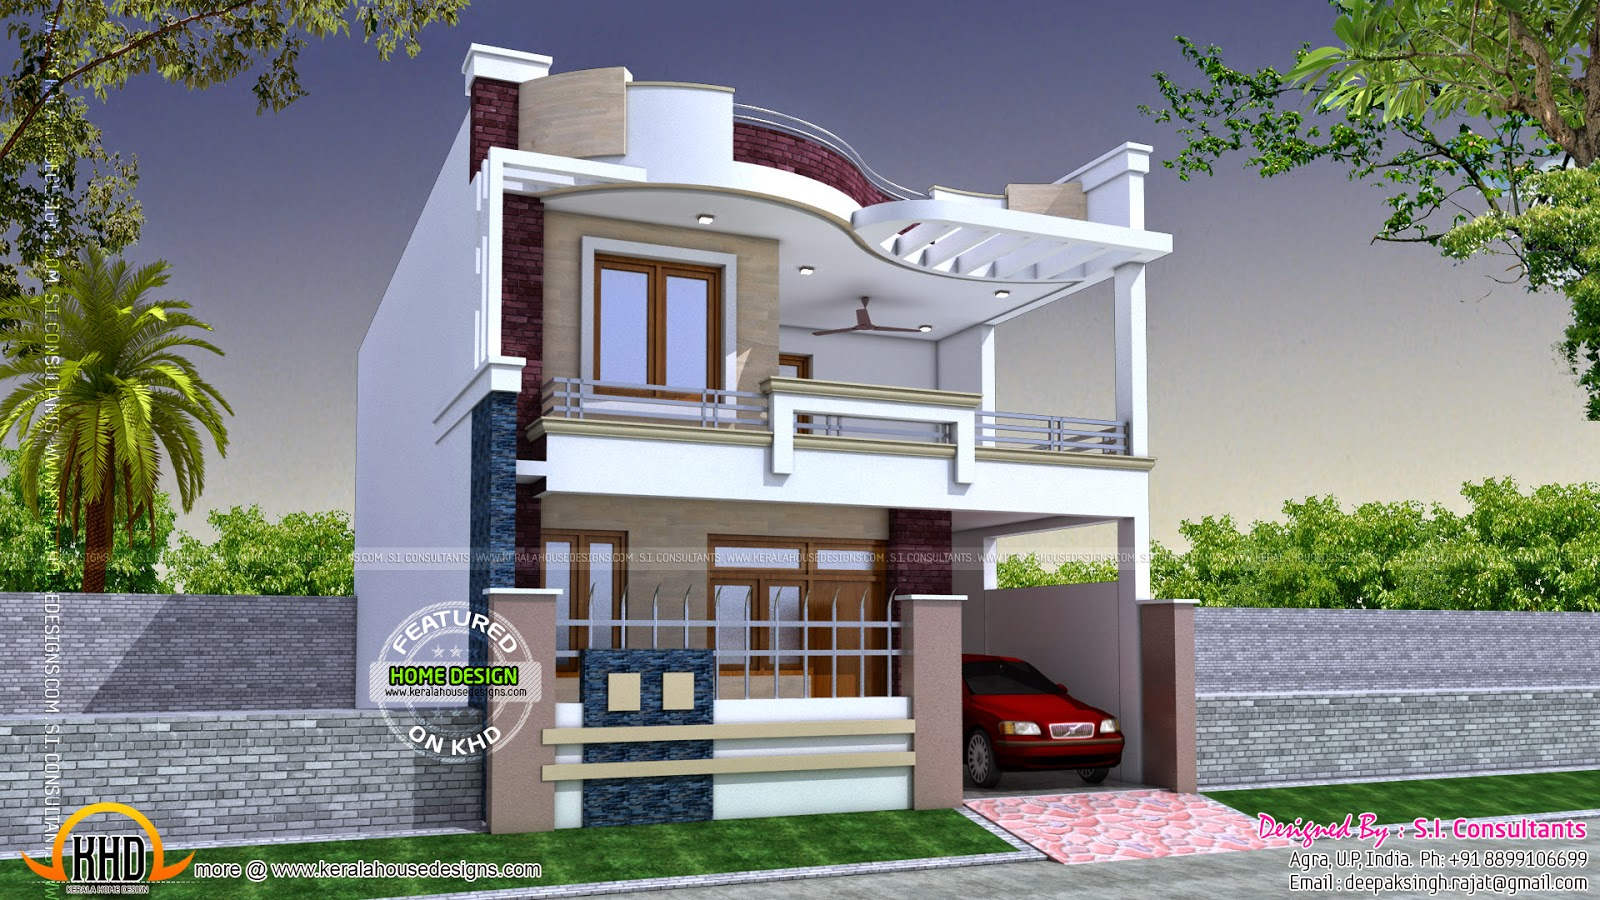 Modern indian home design kerala home design and floor plans for Customize house online